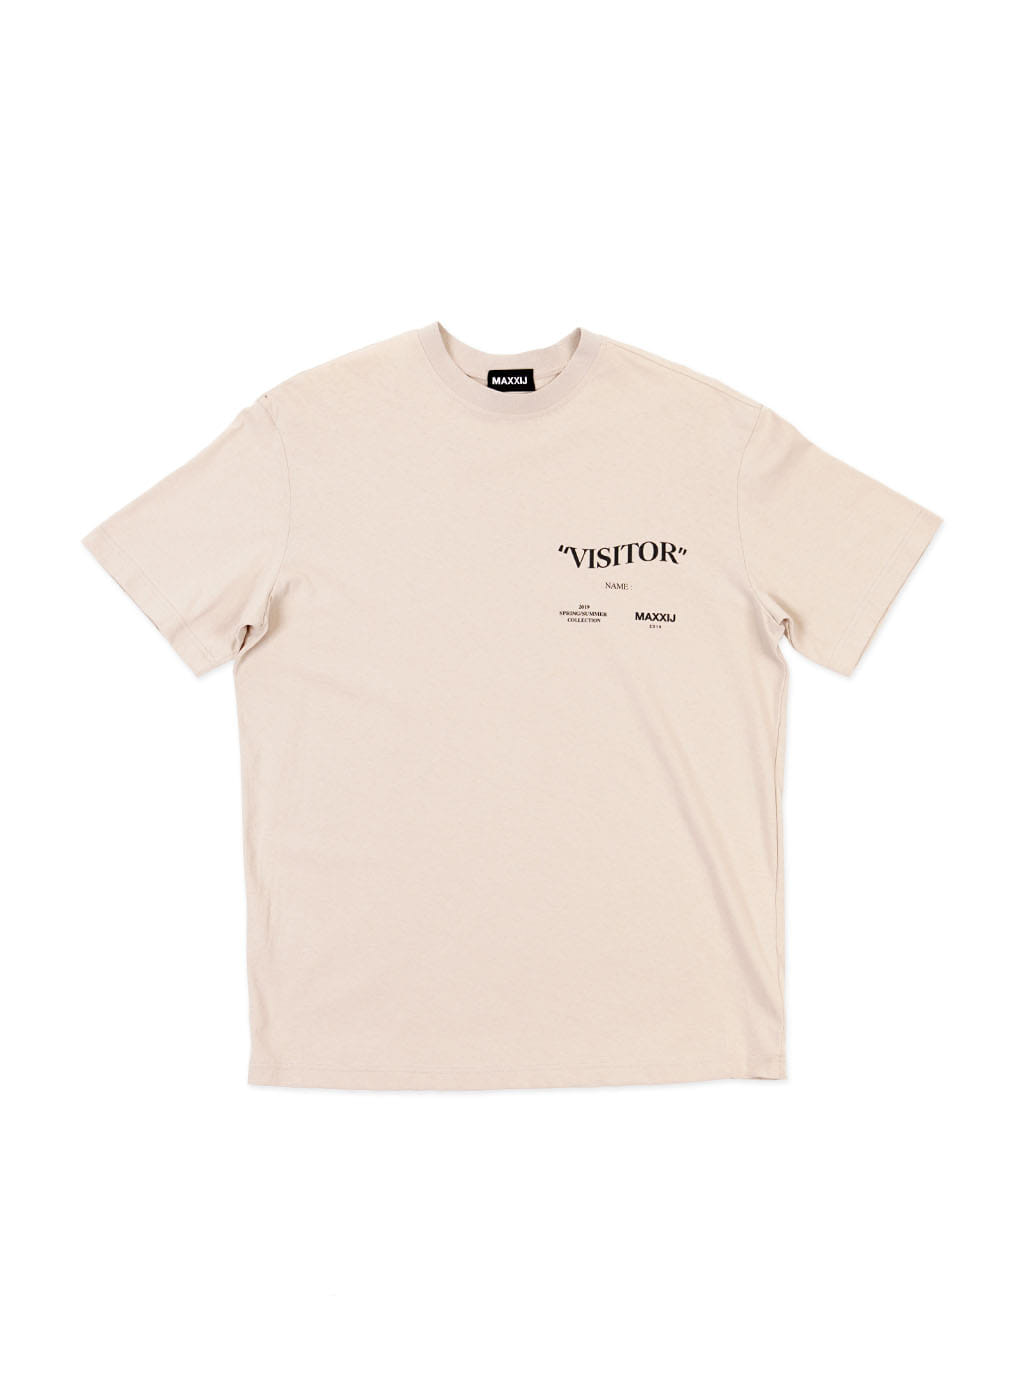 Beige 'Visitor' T-shirt